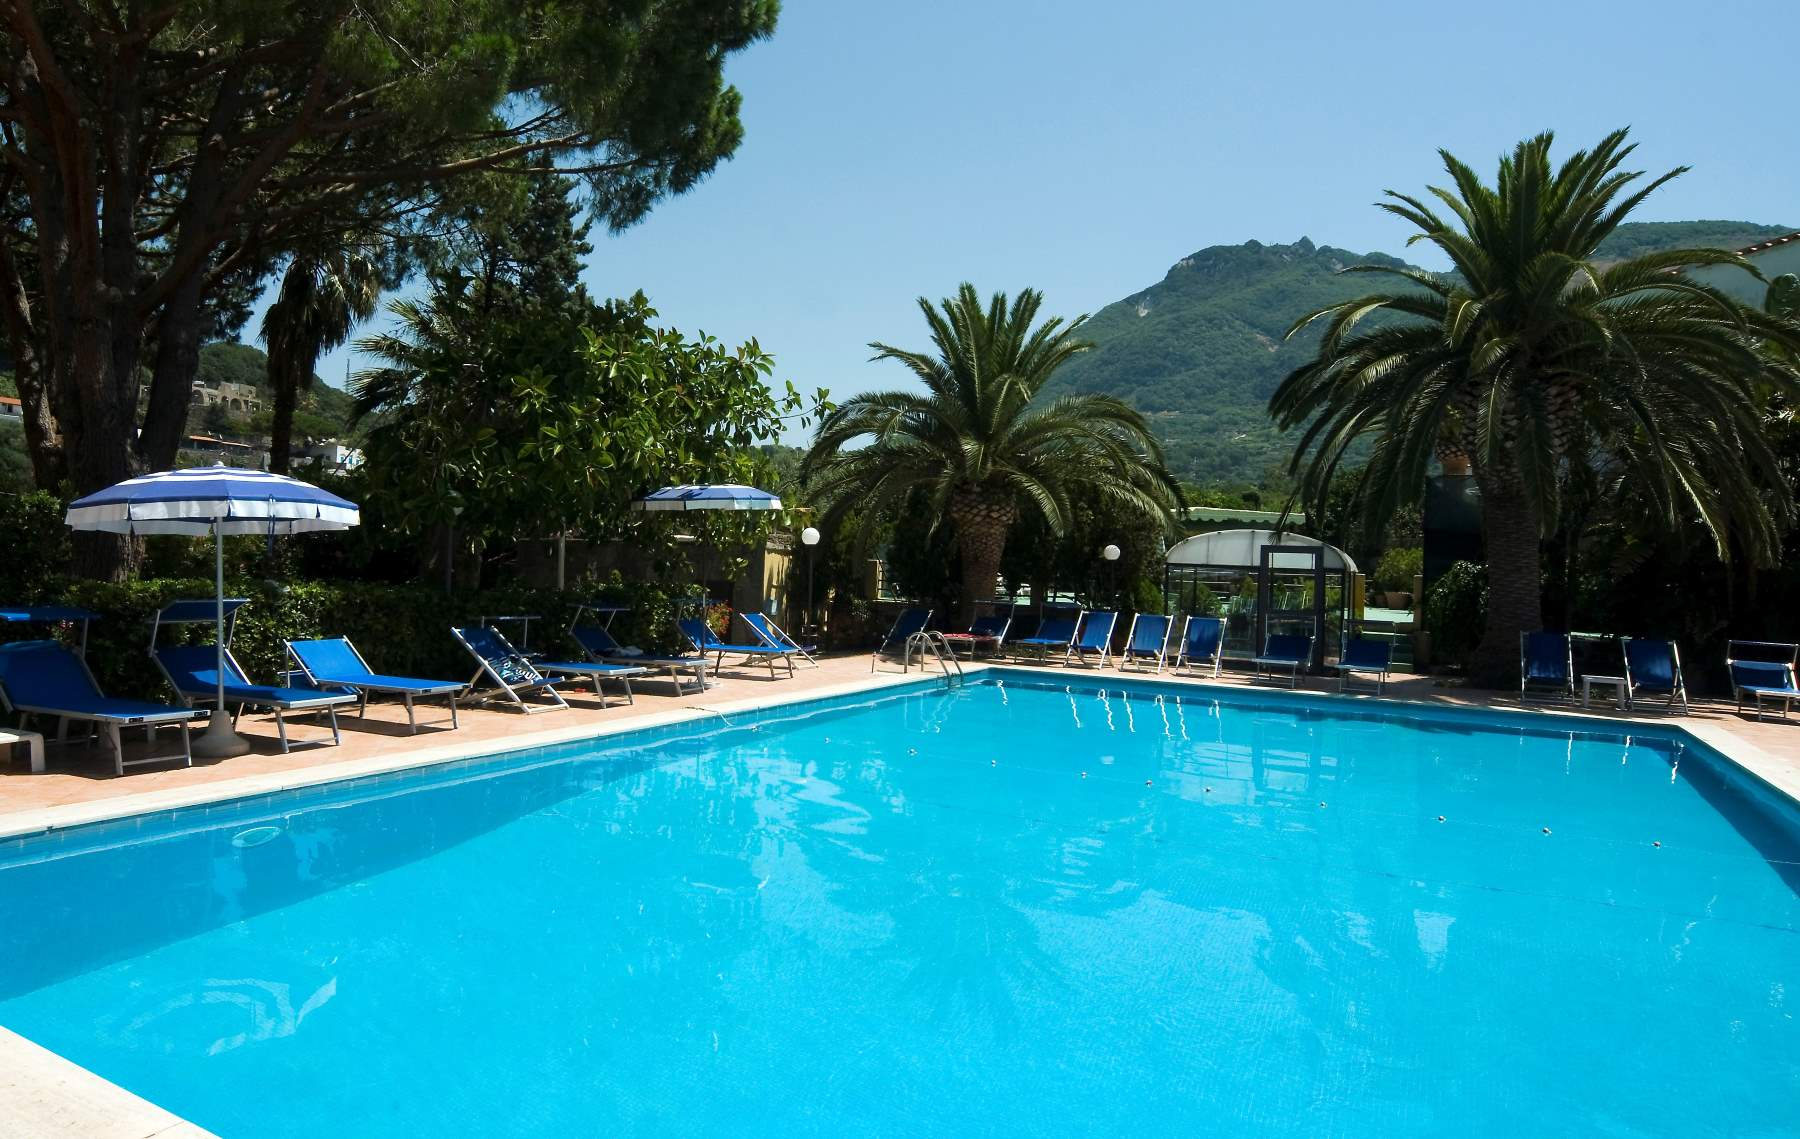 Family Hotel Le Canne a Forio d'Ischia